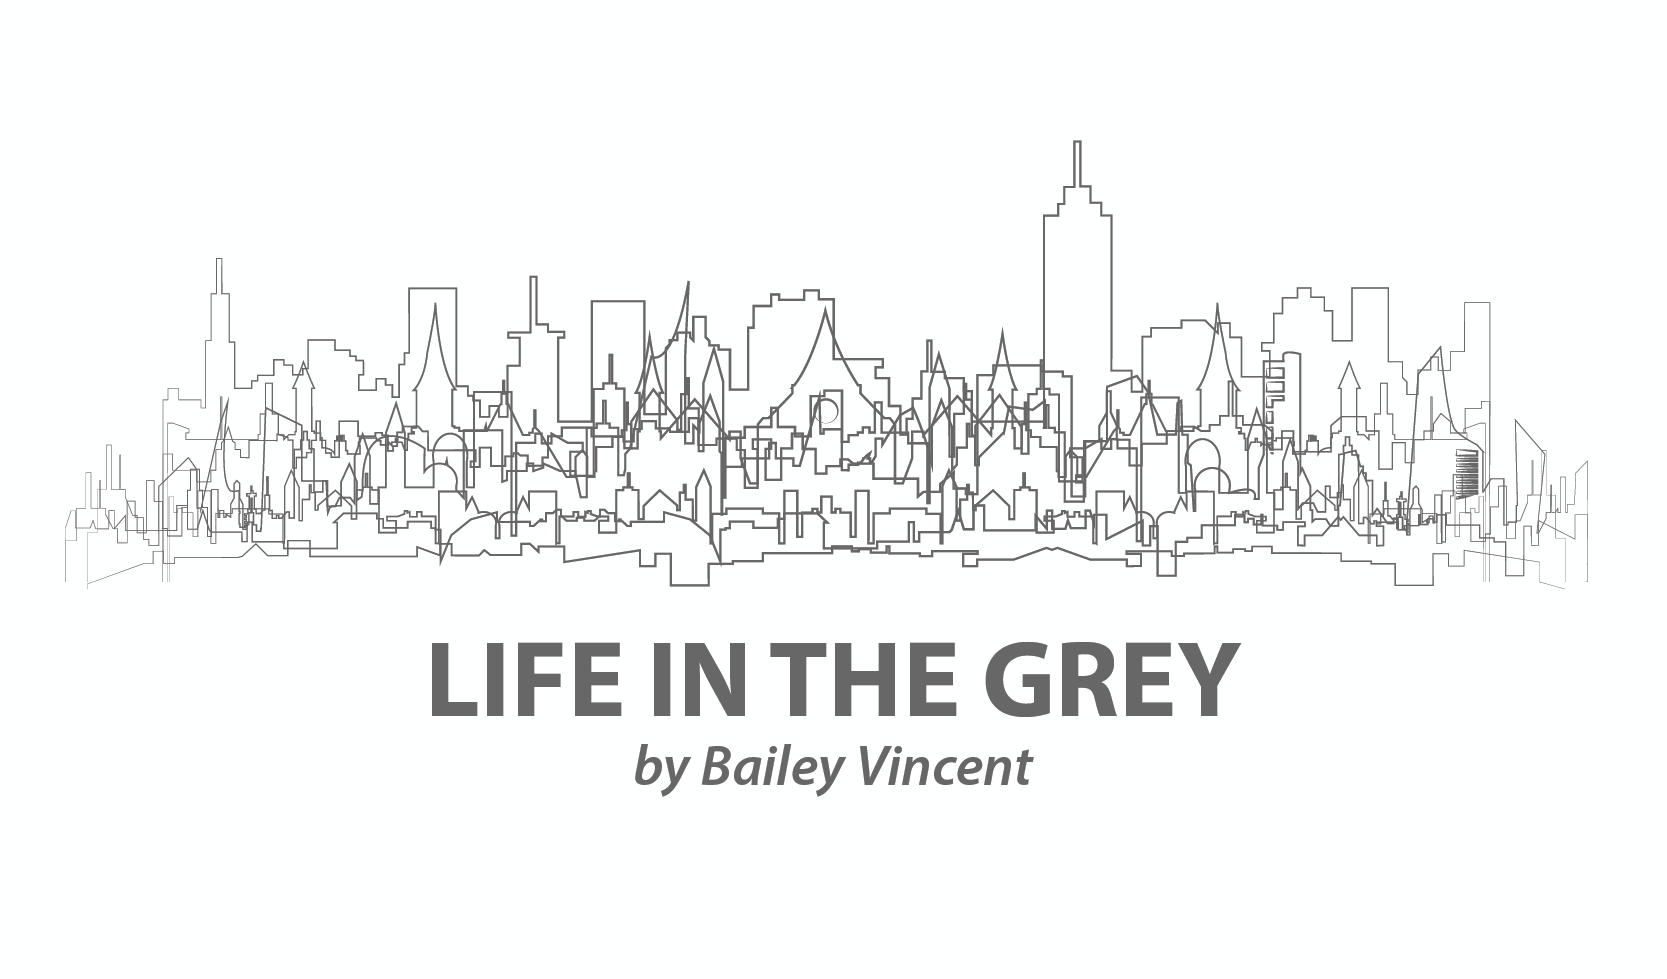 Life in the Grey